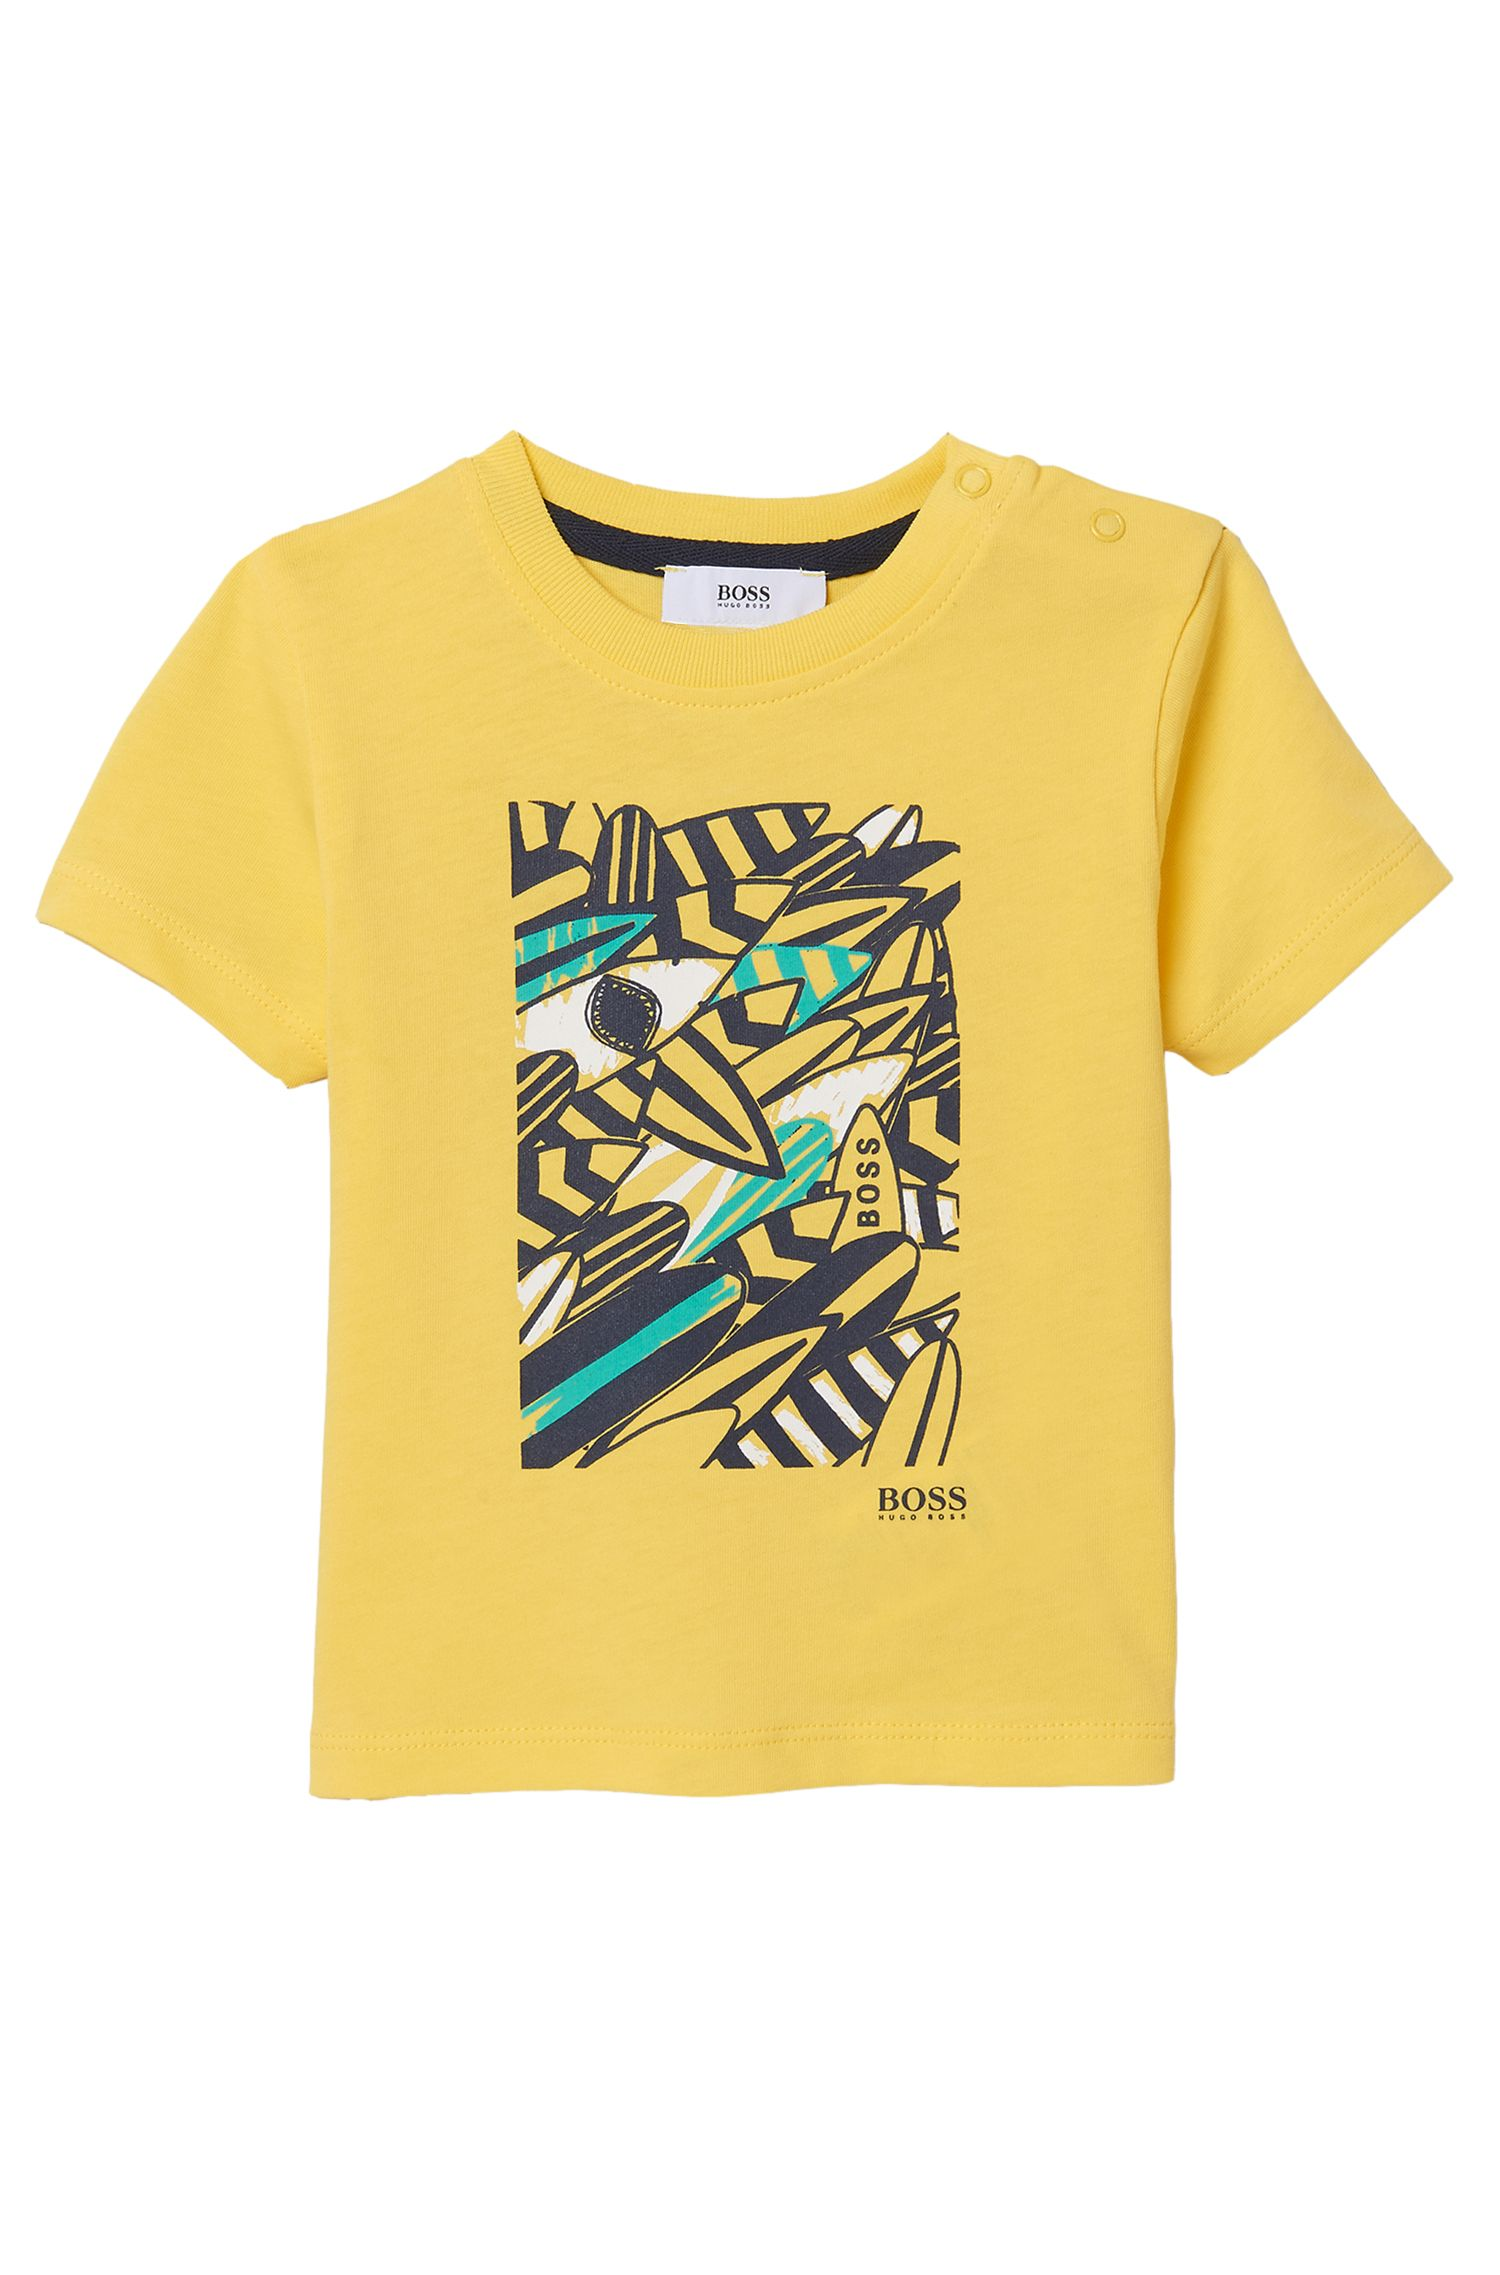 'J05459' | Toddler Cotton Graphic Tee